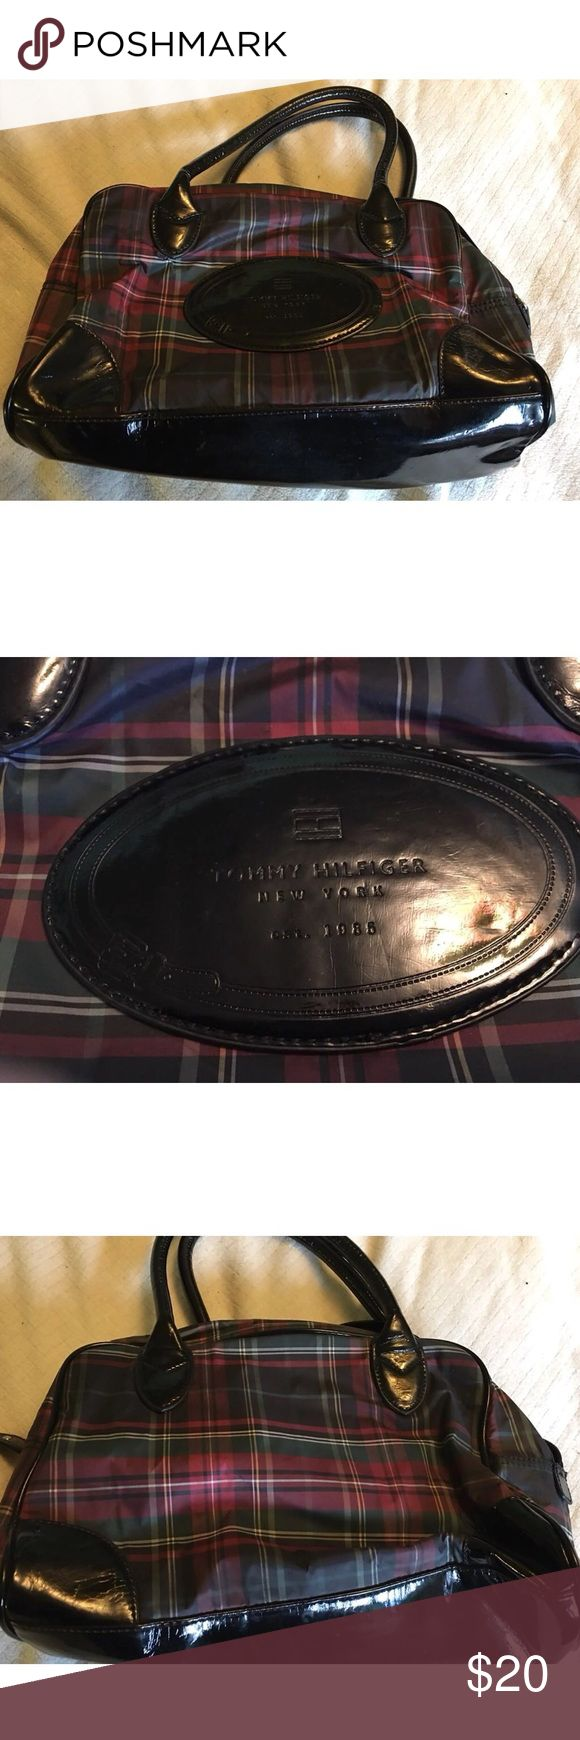 Tommy Hilfiger Plaid Vinyl Handbag Tommy Hilfiger NY plaid handbag. Pretty sure its vinyl. This bag was a free promotional item in Tommy outlet stores several years back. Being vinyl it does have some surface scuffs. Tommy Hilfiger Bags Totes